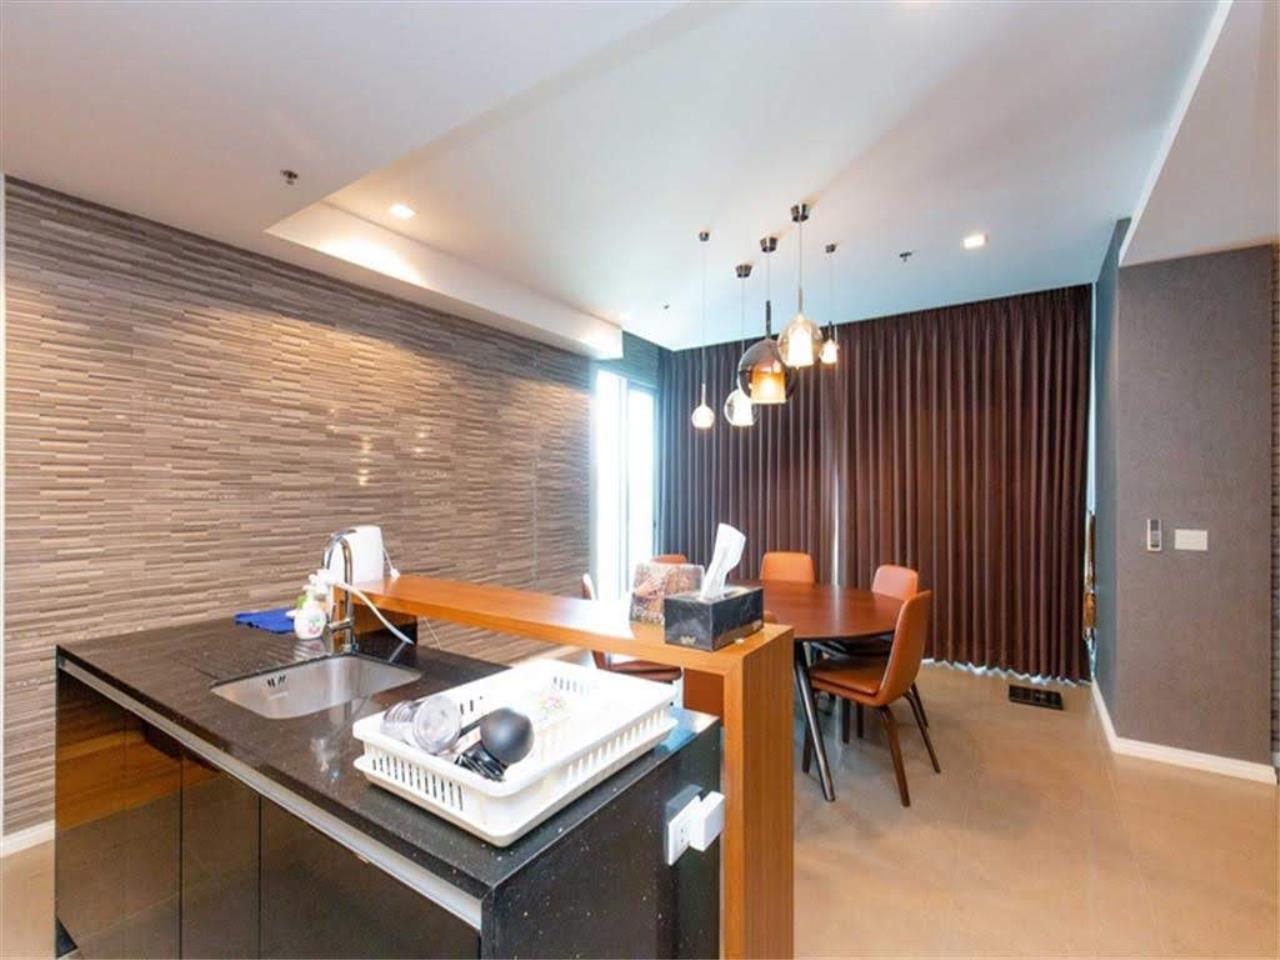 Bestbkkcondos Agency's The River - 233,8 sqm - For Sale : 52 000 000 THB - 3 Bedrooms 11